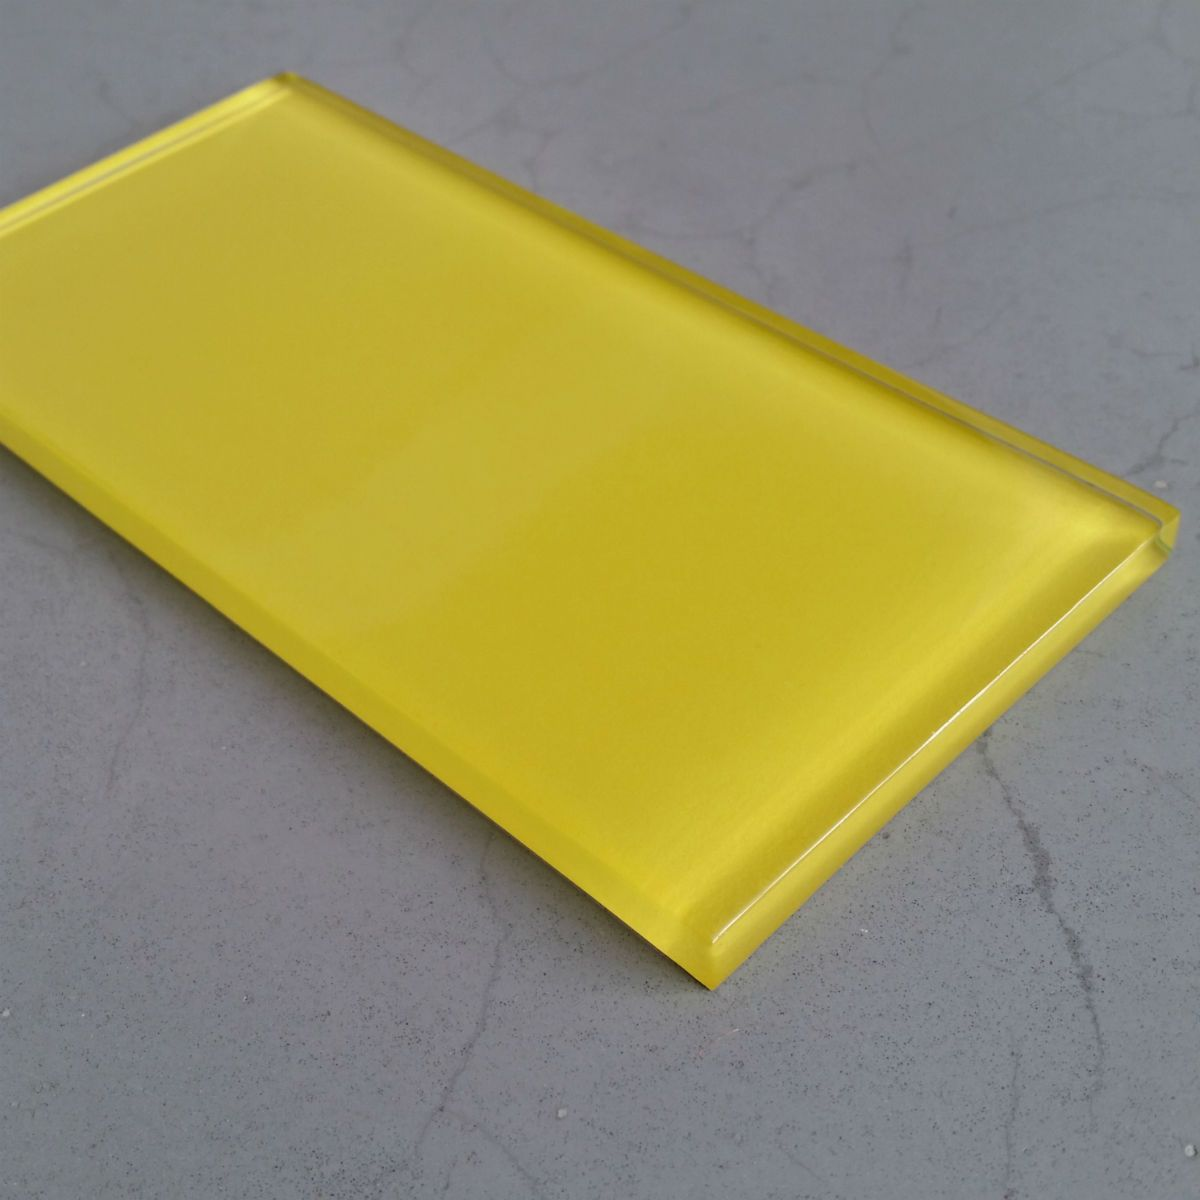 Acid yellow boom glass metro tiles metro tiles bathroom tiling acid yellow boom glass metro tiles ppazfo